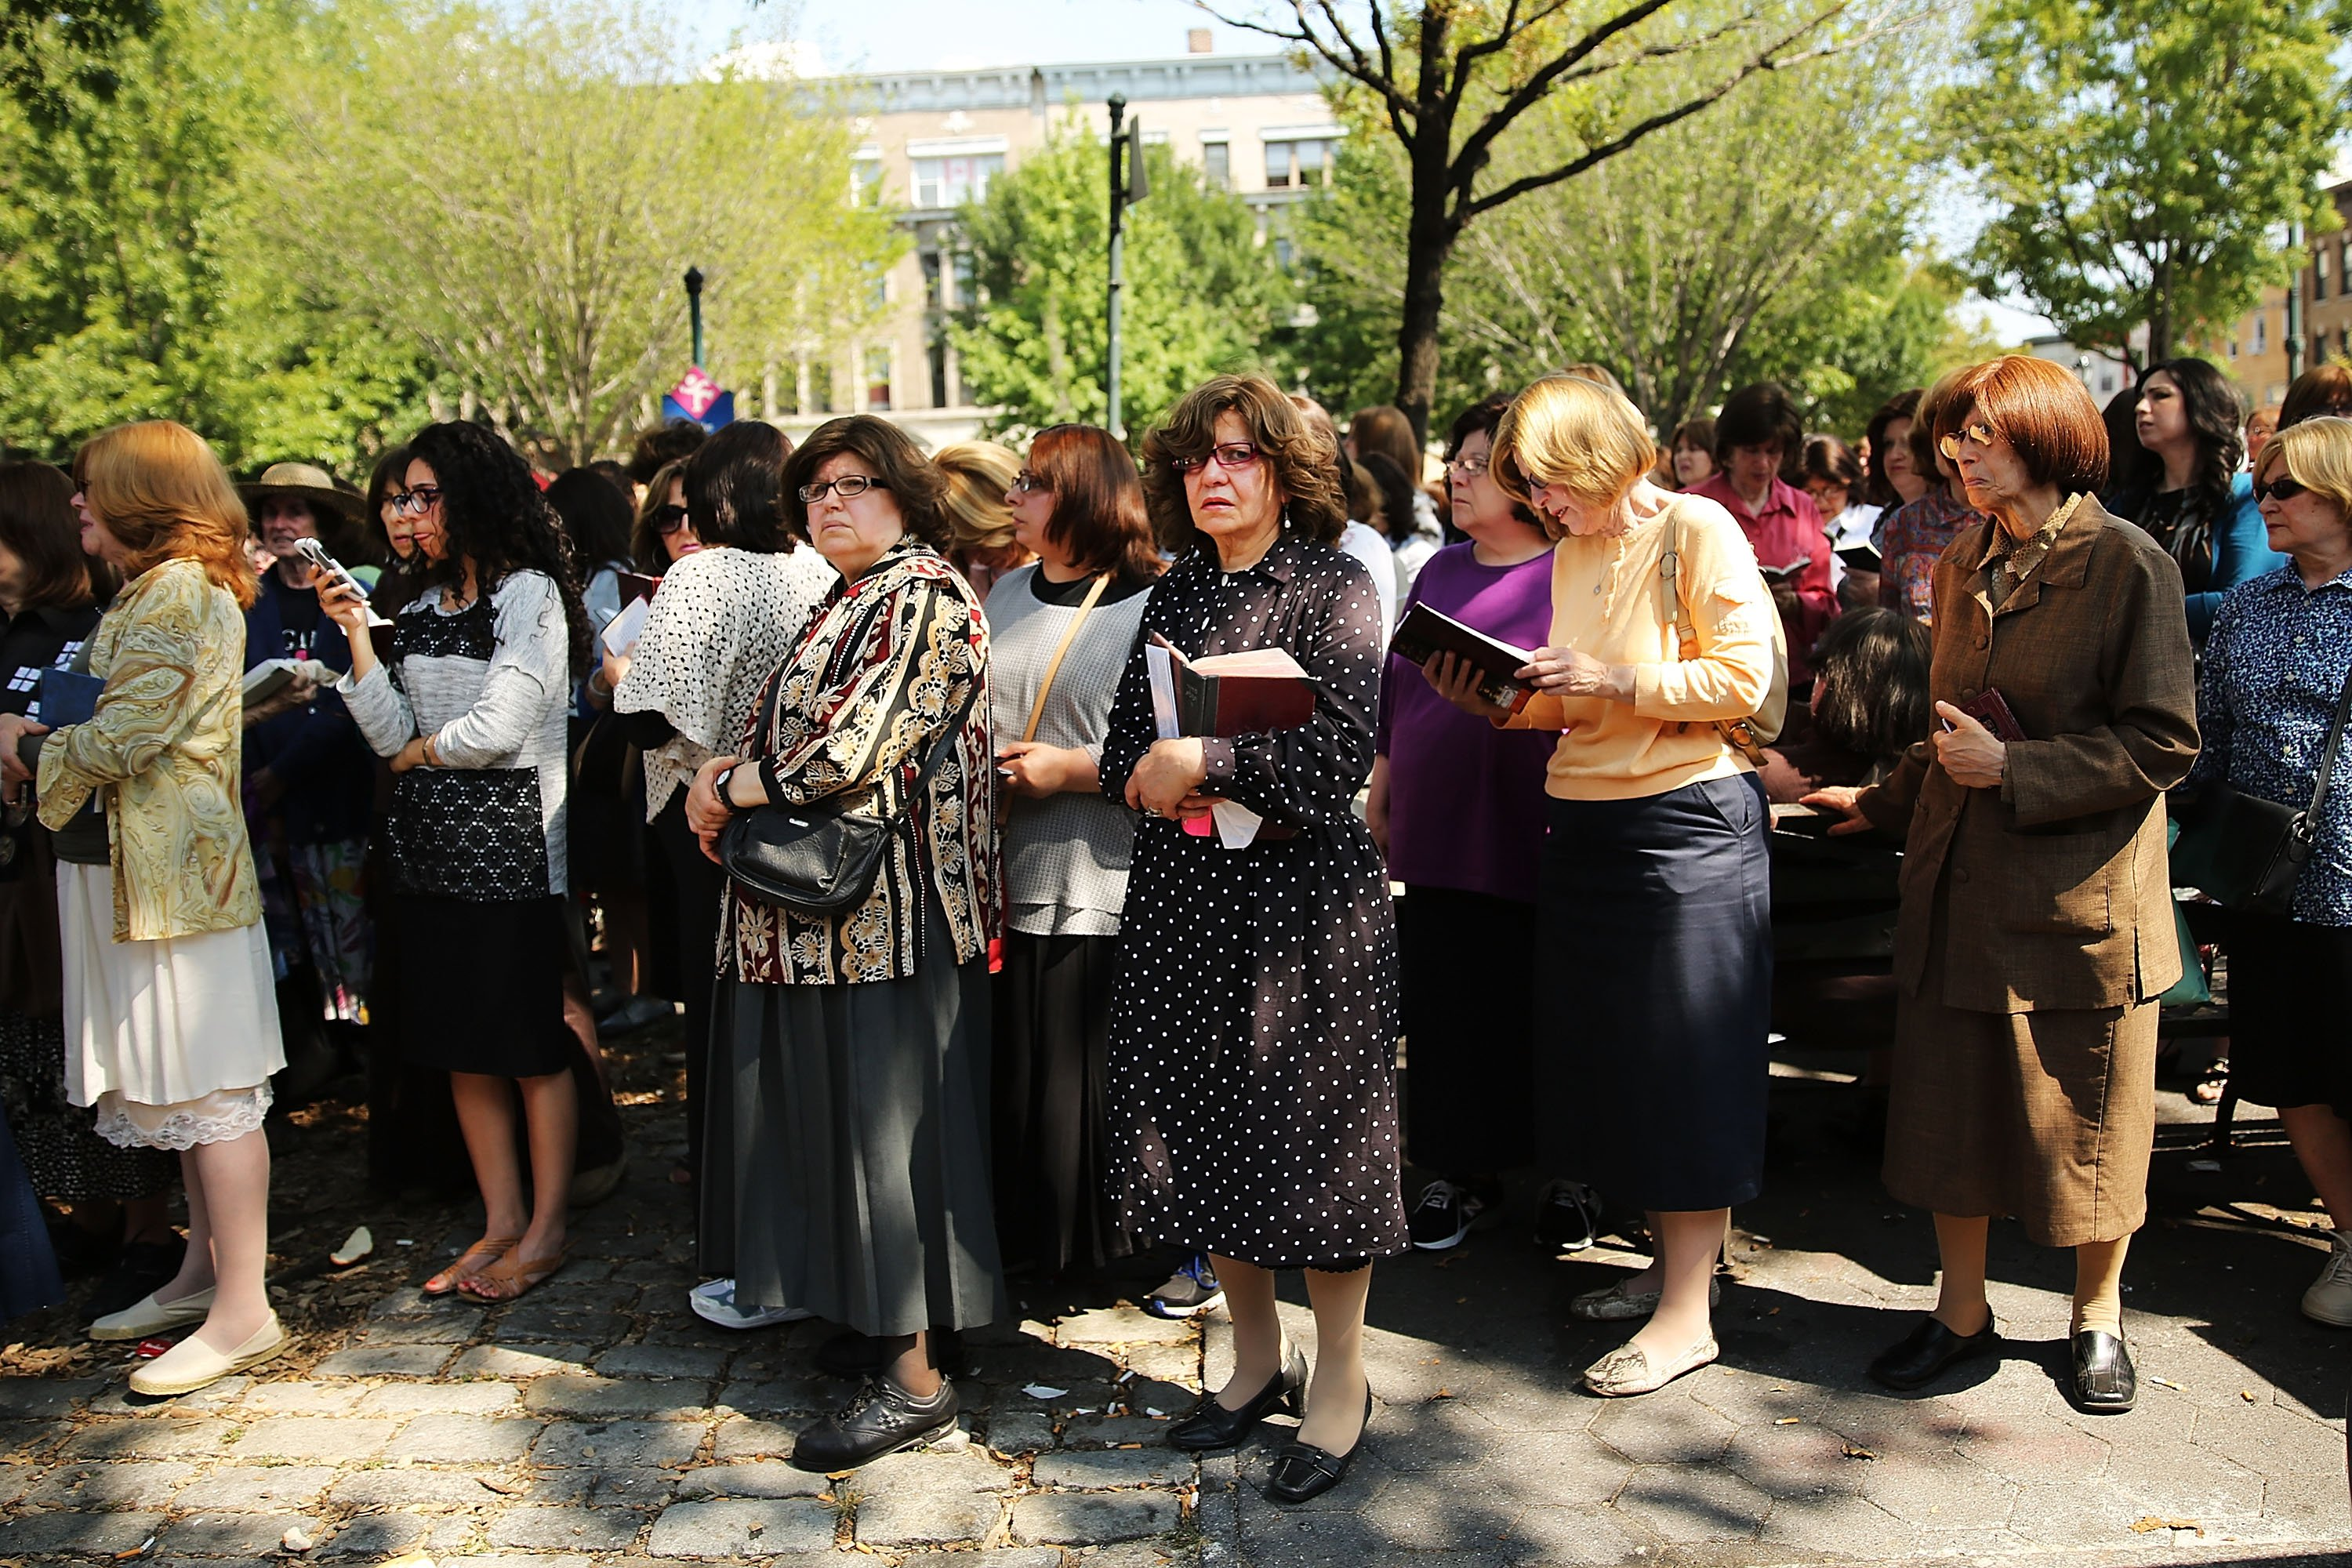 Women watch as mourners pay their respects to the coffin in a hearse outside the Chabad-Lubavitch headquarters during the funeral of Rabbi Joseph Raksin in the Brooklyn borough of New York City on Aug. 11, 2014.